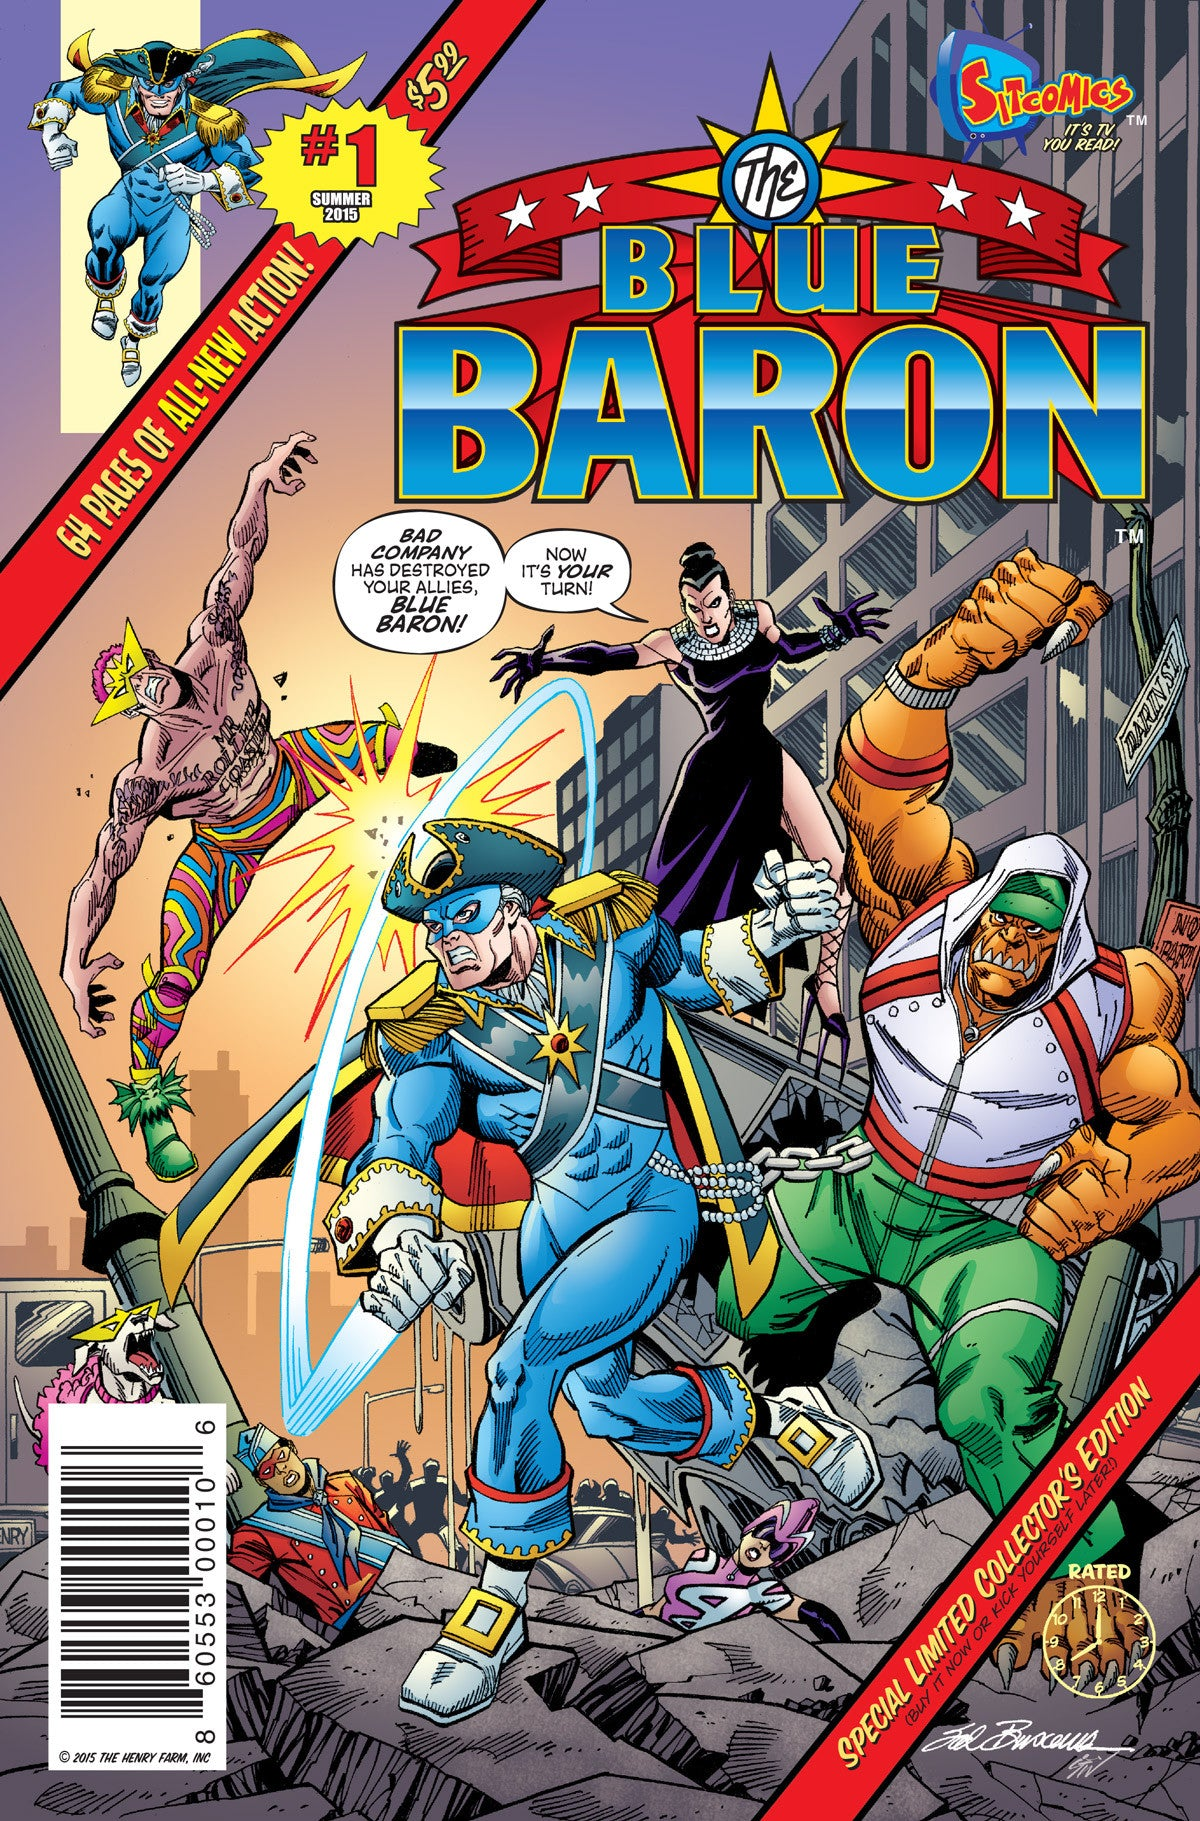 Blue Baron #1 (Digital Download)